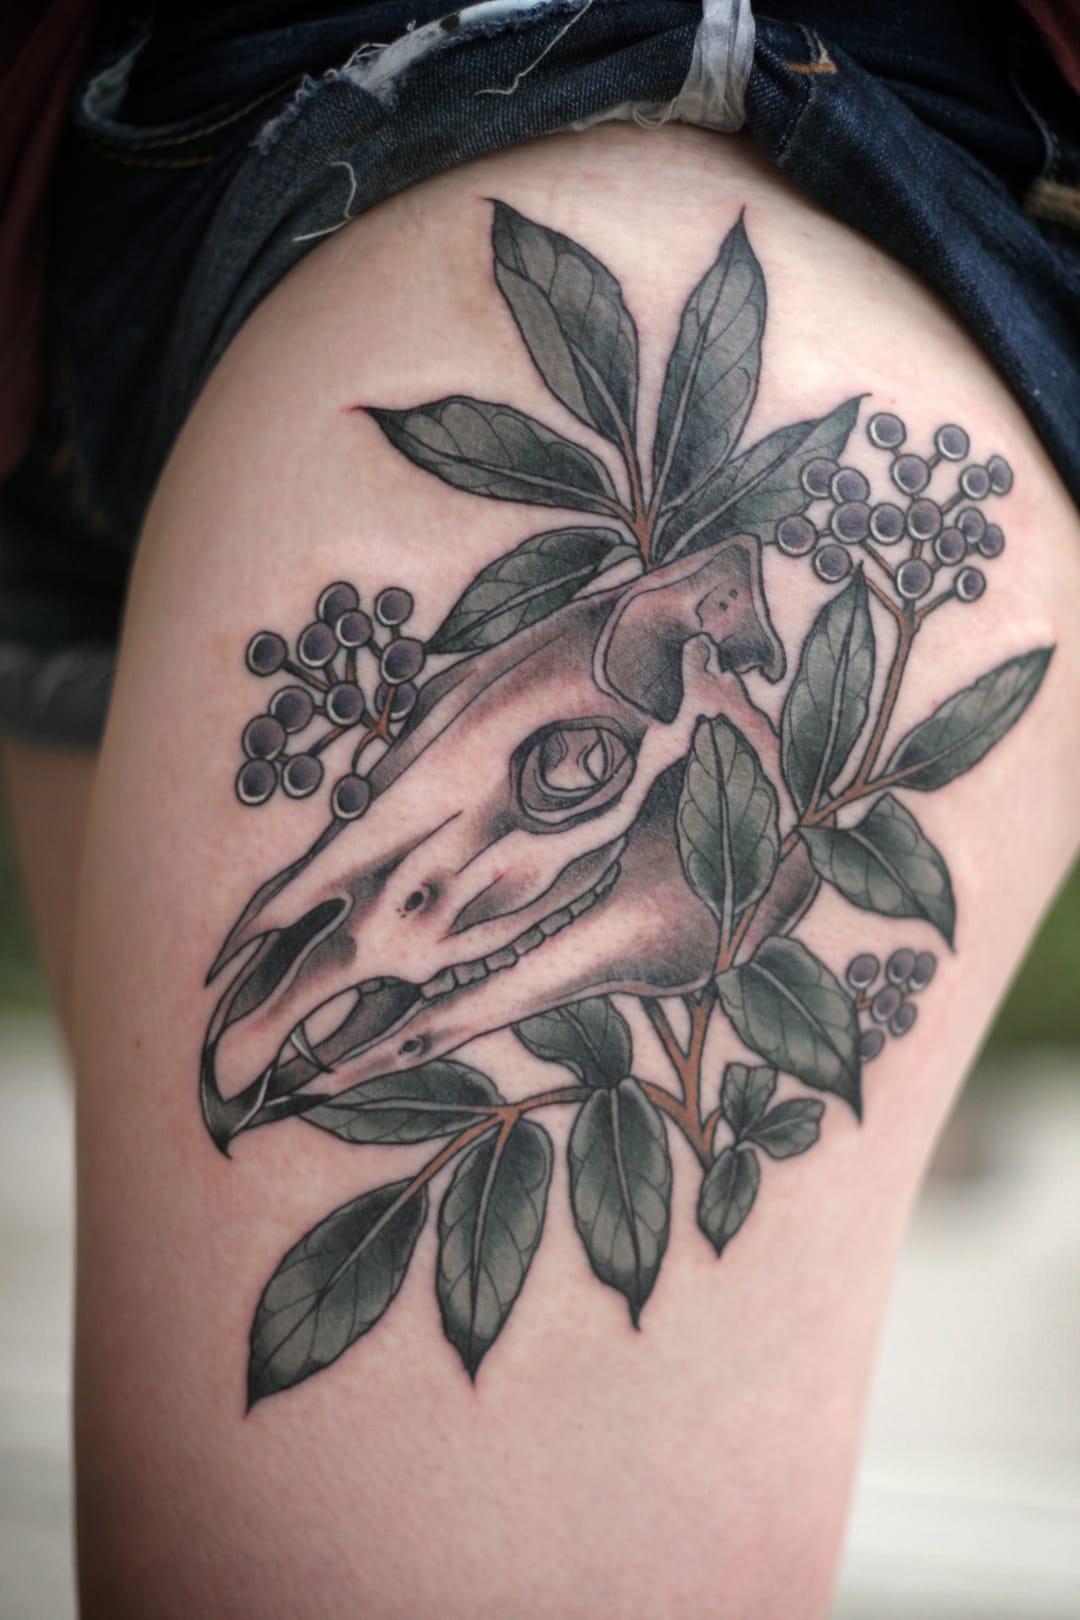 Skull and flowers tattoo